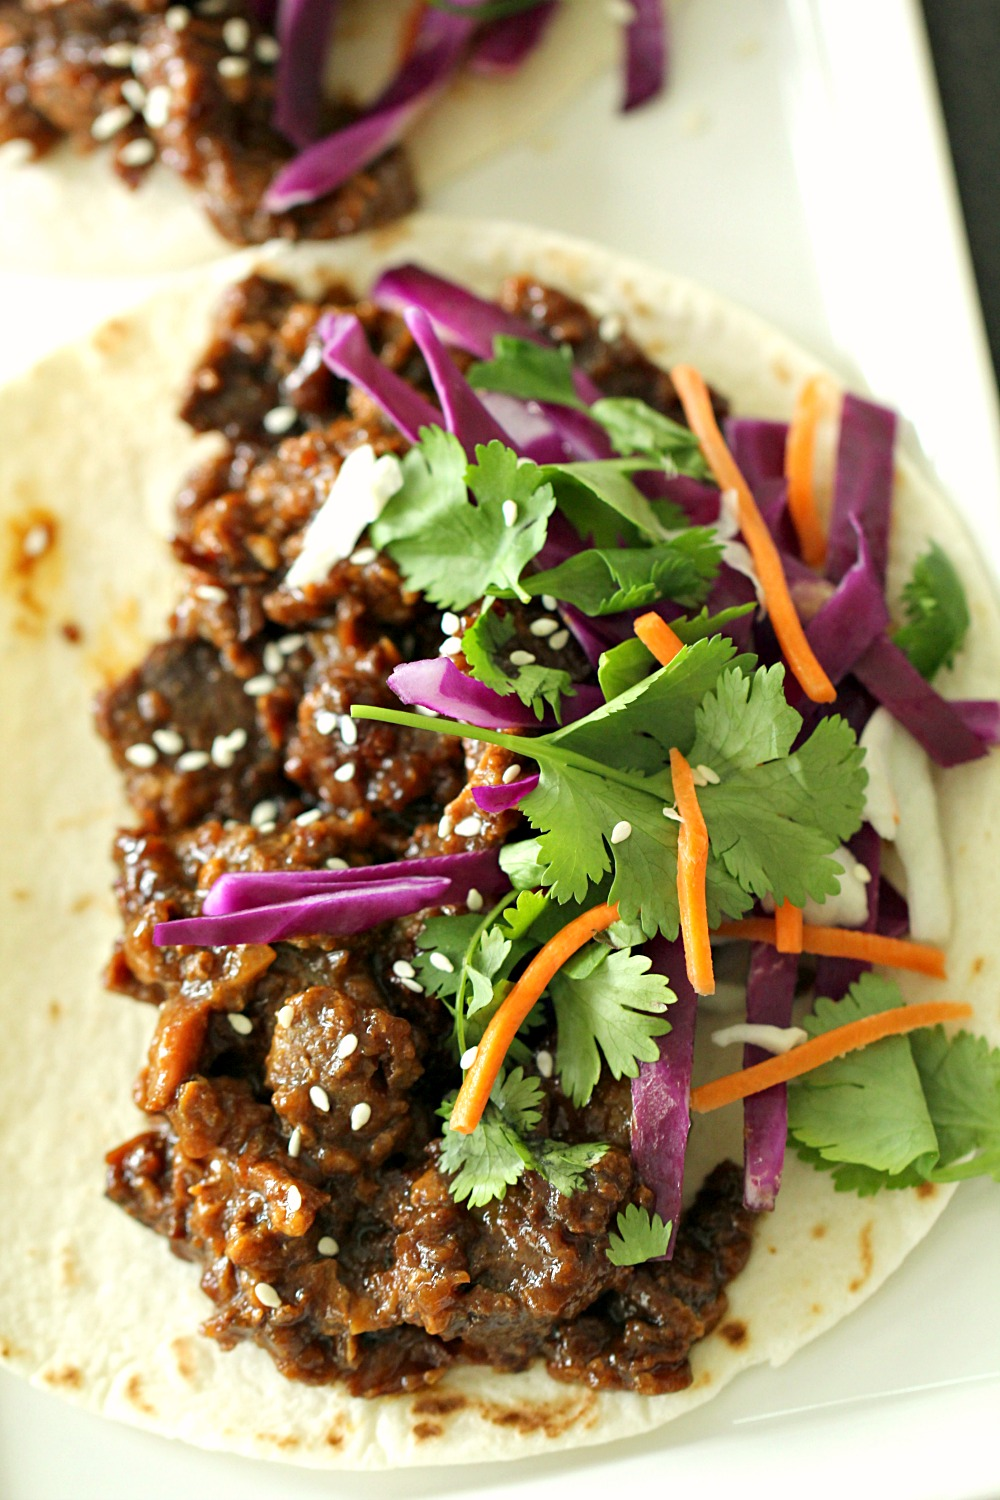 Korean Beef on flour tortillas with toppings